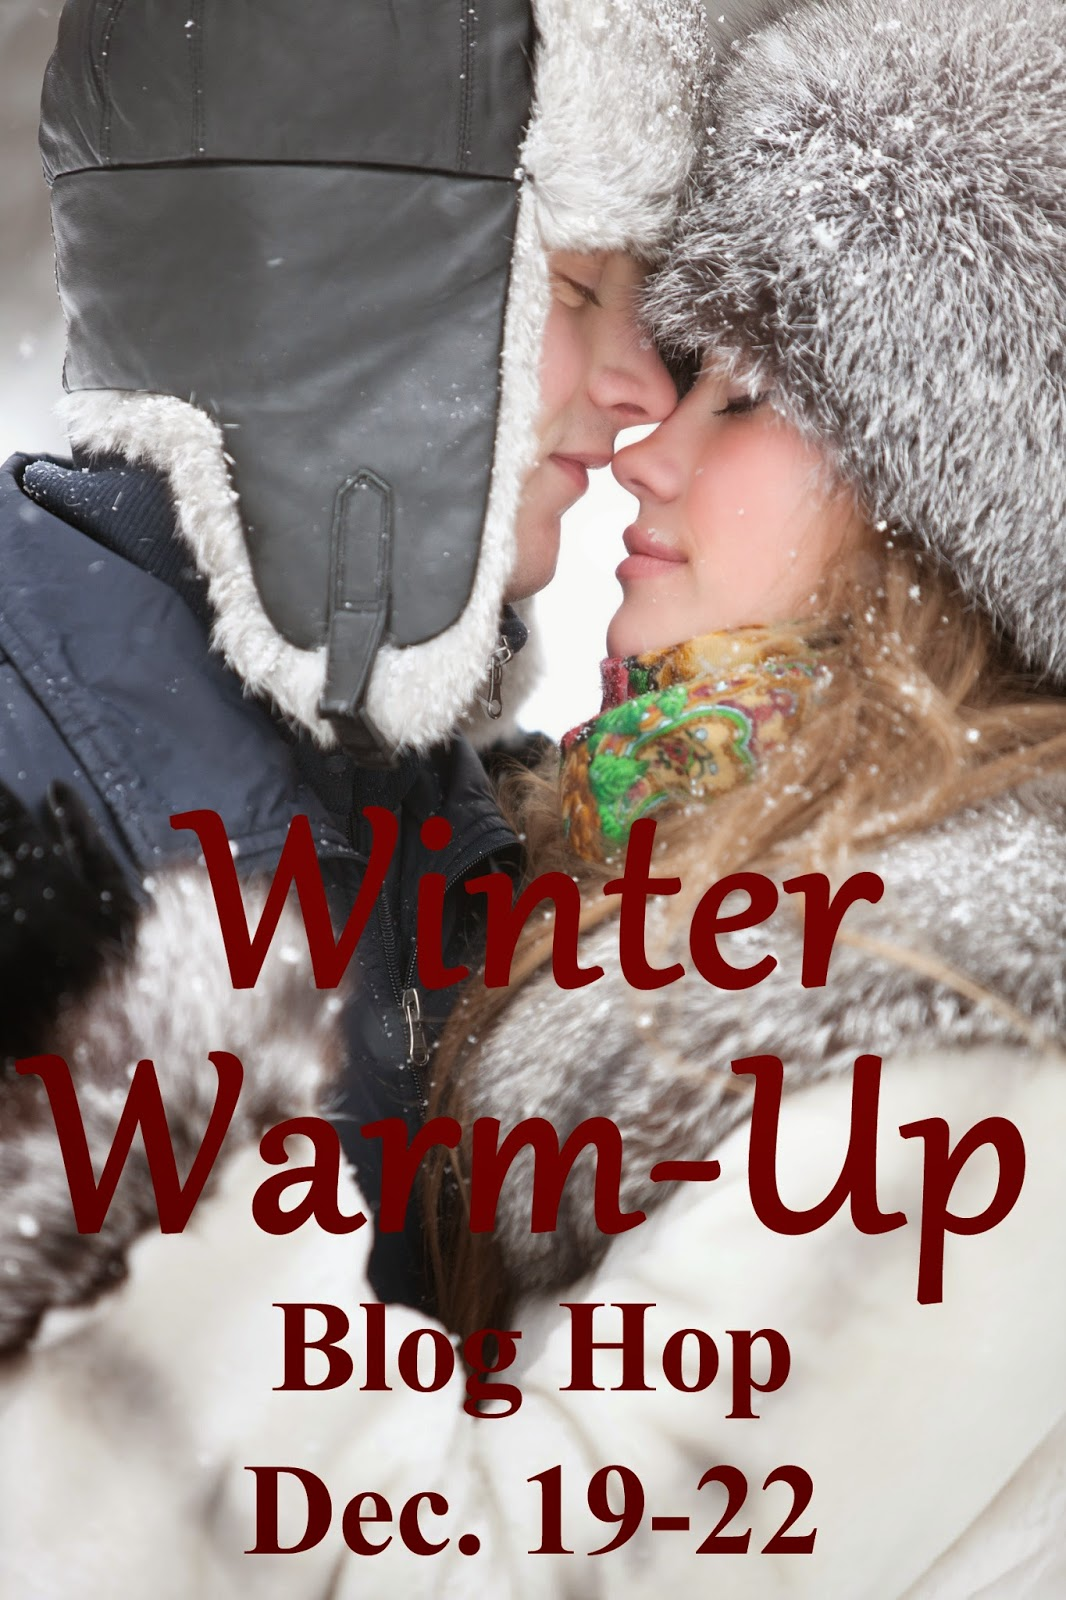 Winter Warm-Up Blog Hop December 19-22